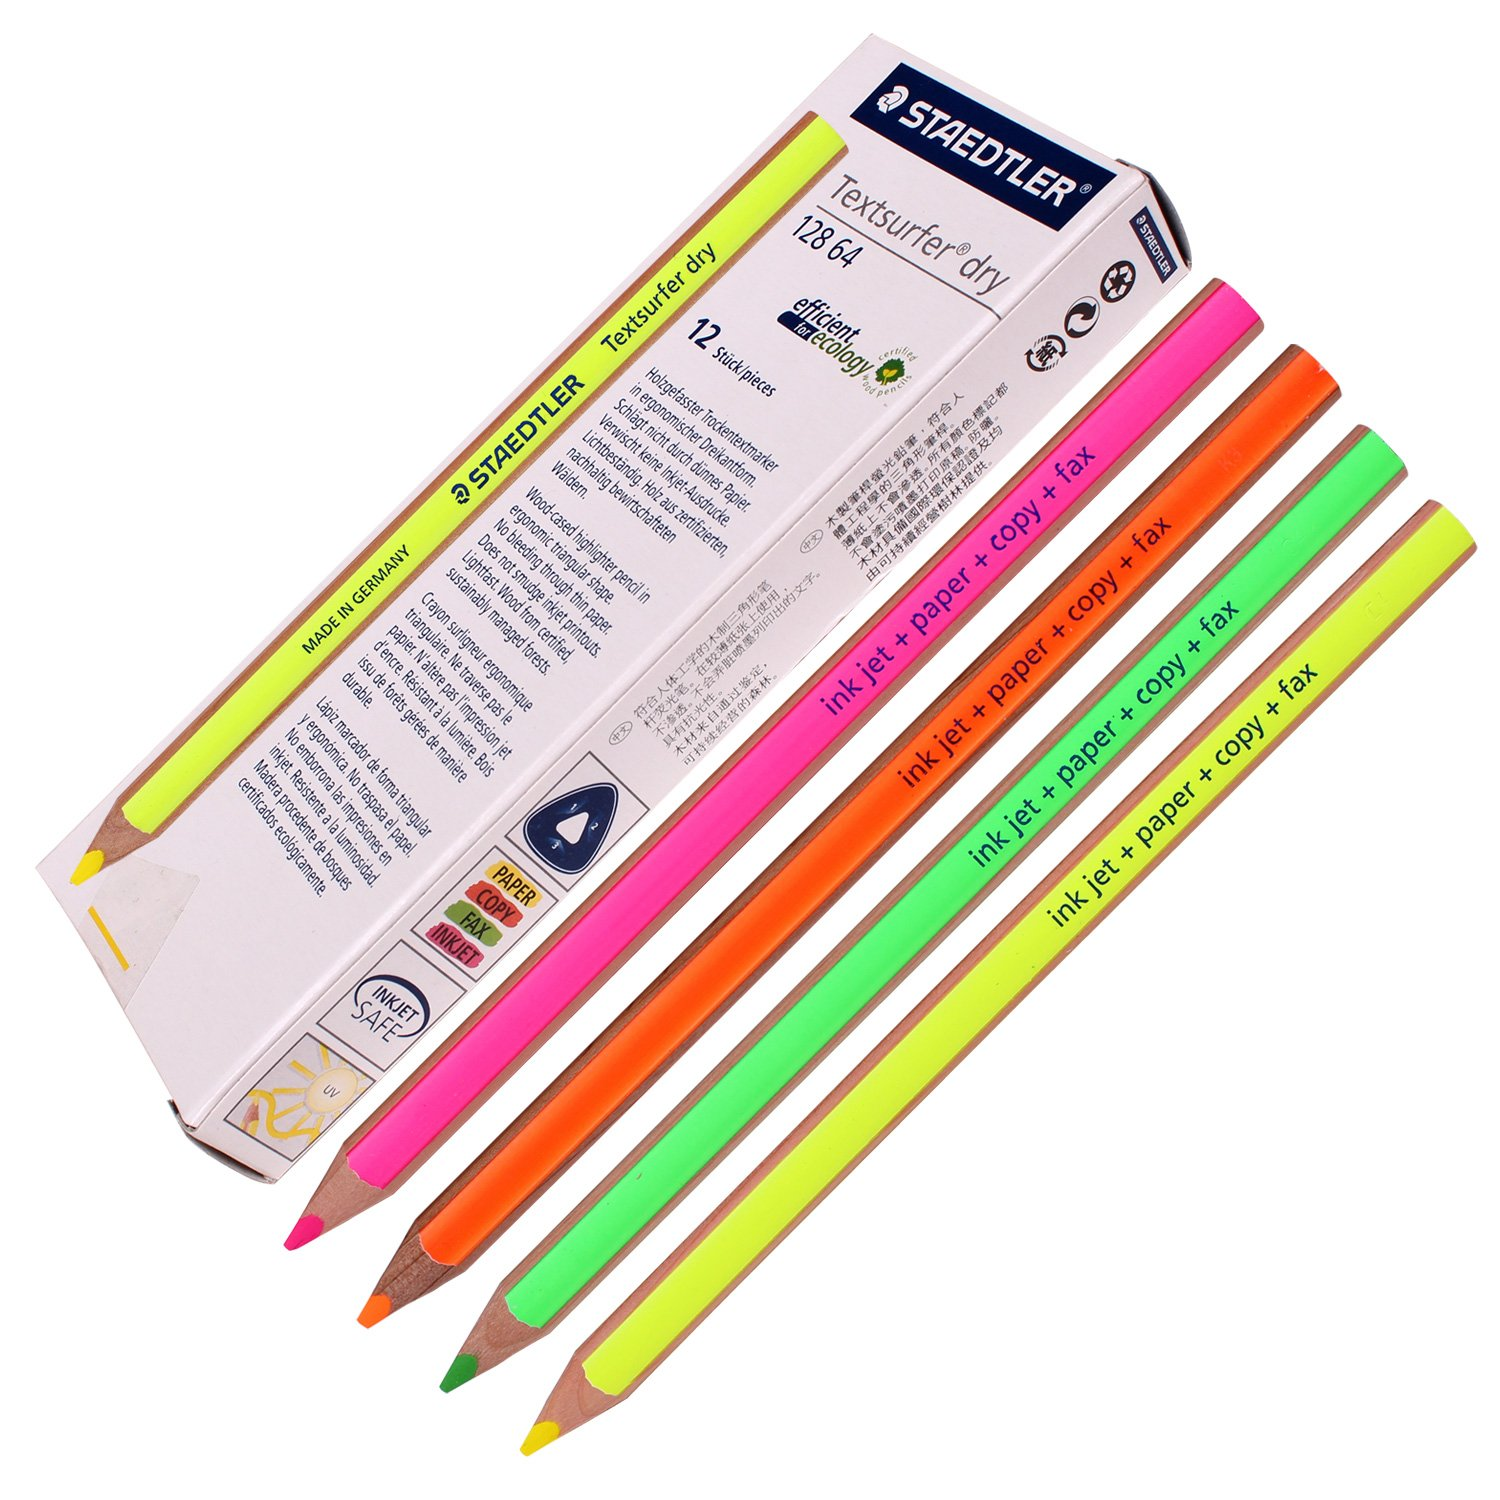 Staedtler Textsurfer Dry Highlighter Pencil 128 64-fn Drawing for Writing Sketching Inkjet, paper, copy, fax(pack of 12)color Mix 128-64-FN